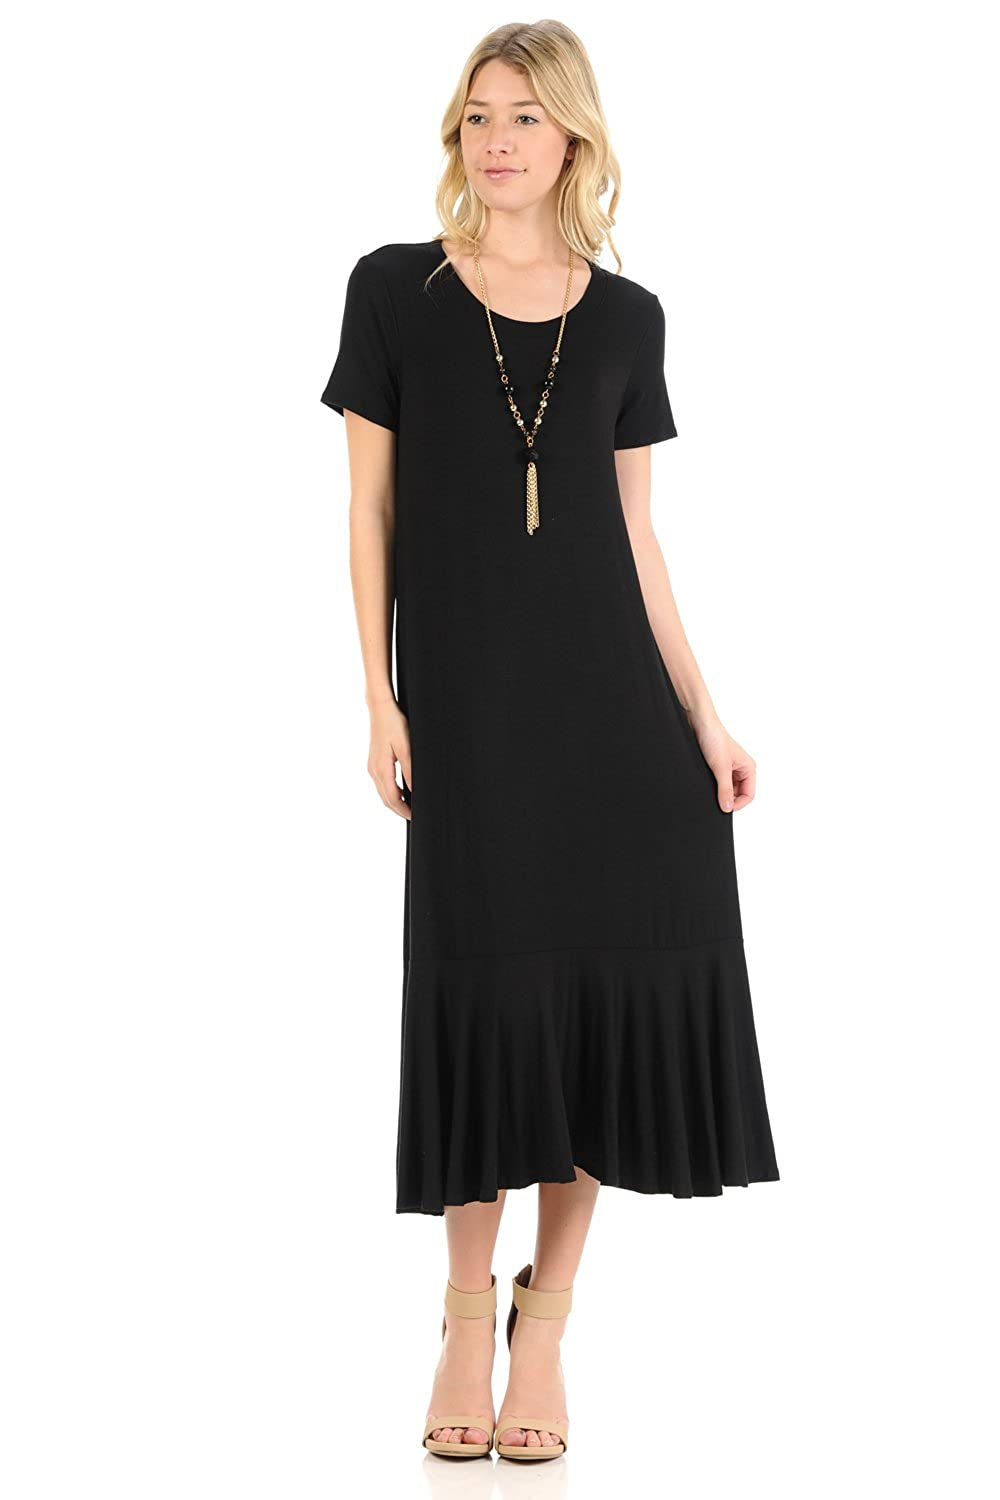 Old Fashioned Dresses | Old Dress Styles iconic luxe Womens A-Line Ruffle Hemline Midi Dress $22.99 AT vintagedancer.com